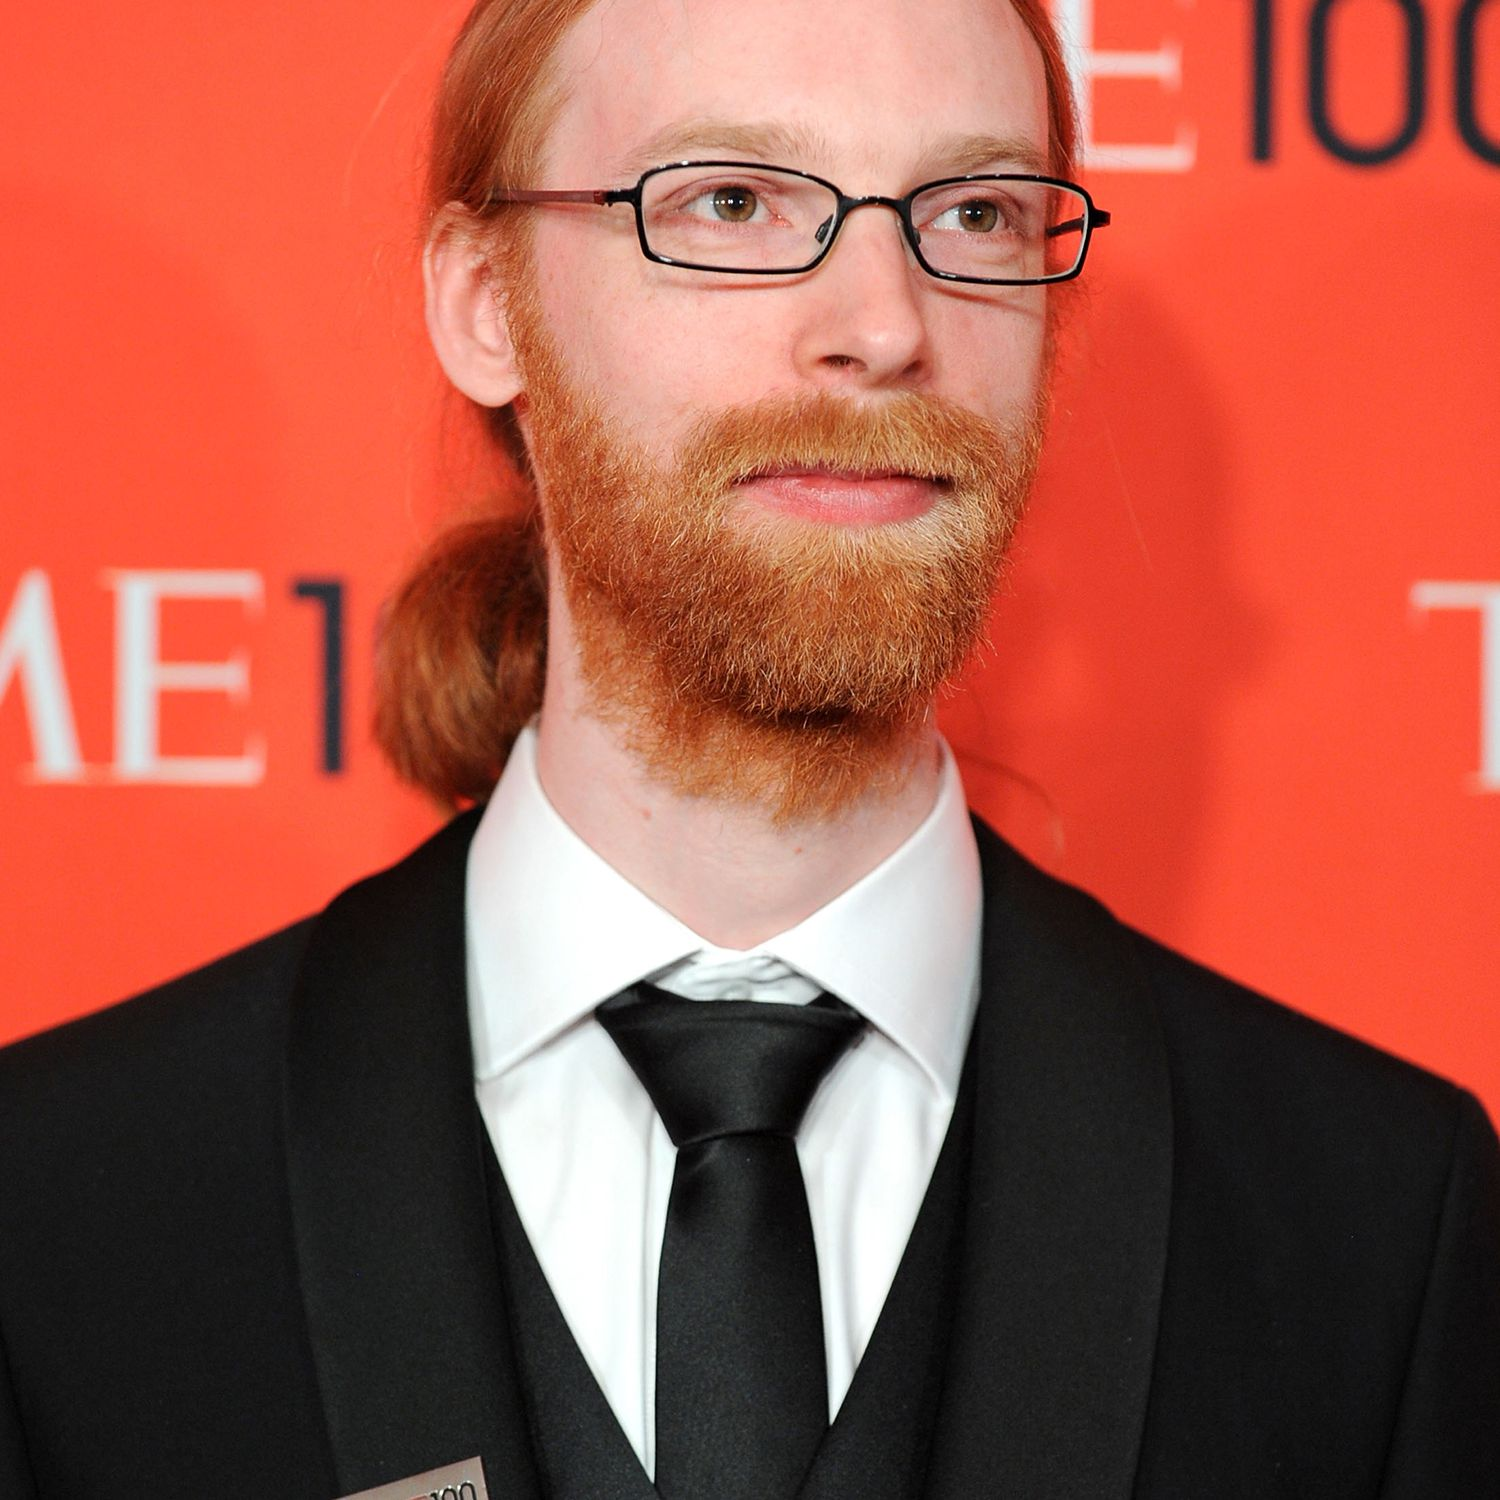 The 41-year old son of father (?) and mother(?) Jens Bergensten in 2020 photo. Jens Bergensten earned a  million dollar salary - leaving the net worth at  million in 2020